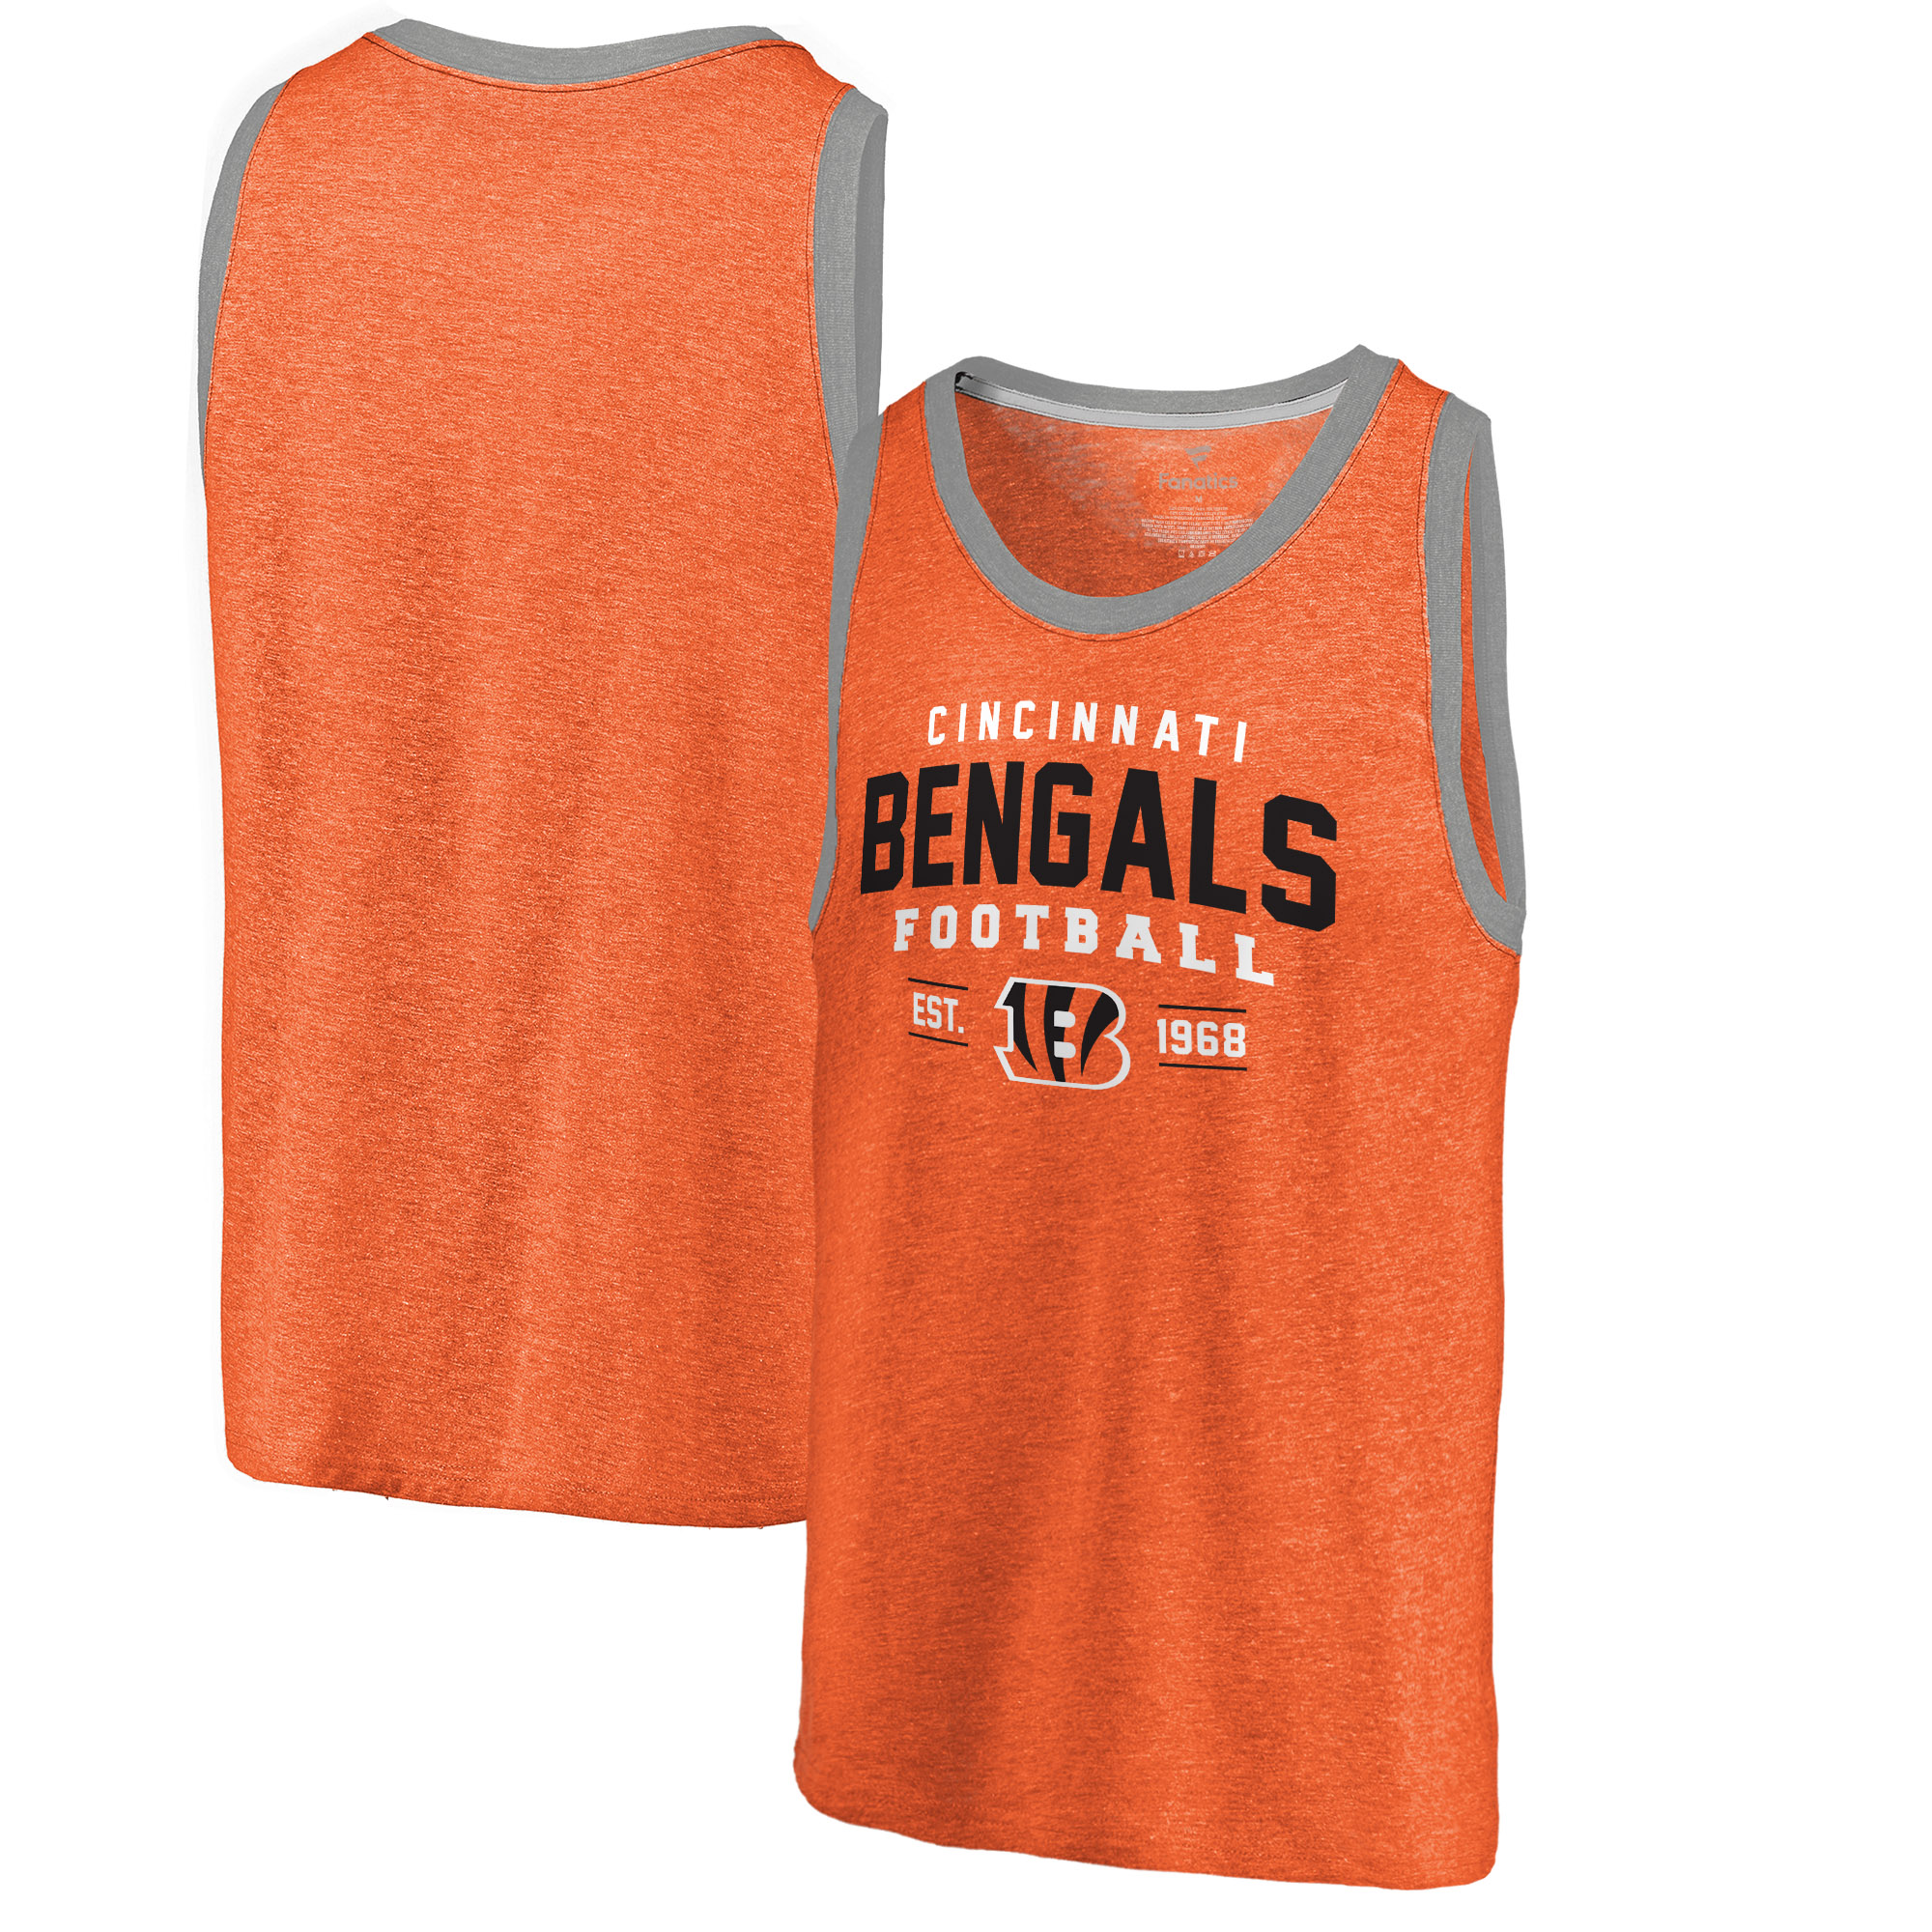 Cincinnati Bengals NFL Pro Line by Fanatics Branded Refresh Tri-Blend Ringer Tank Top - Orange - XL